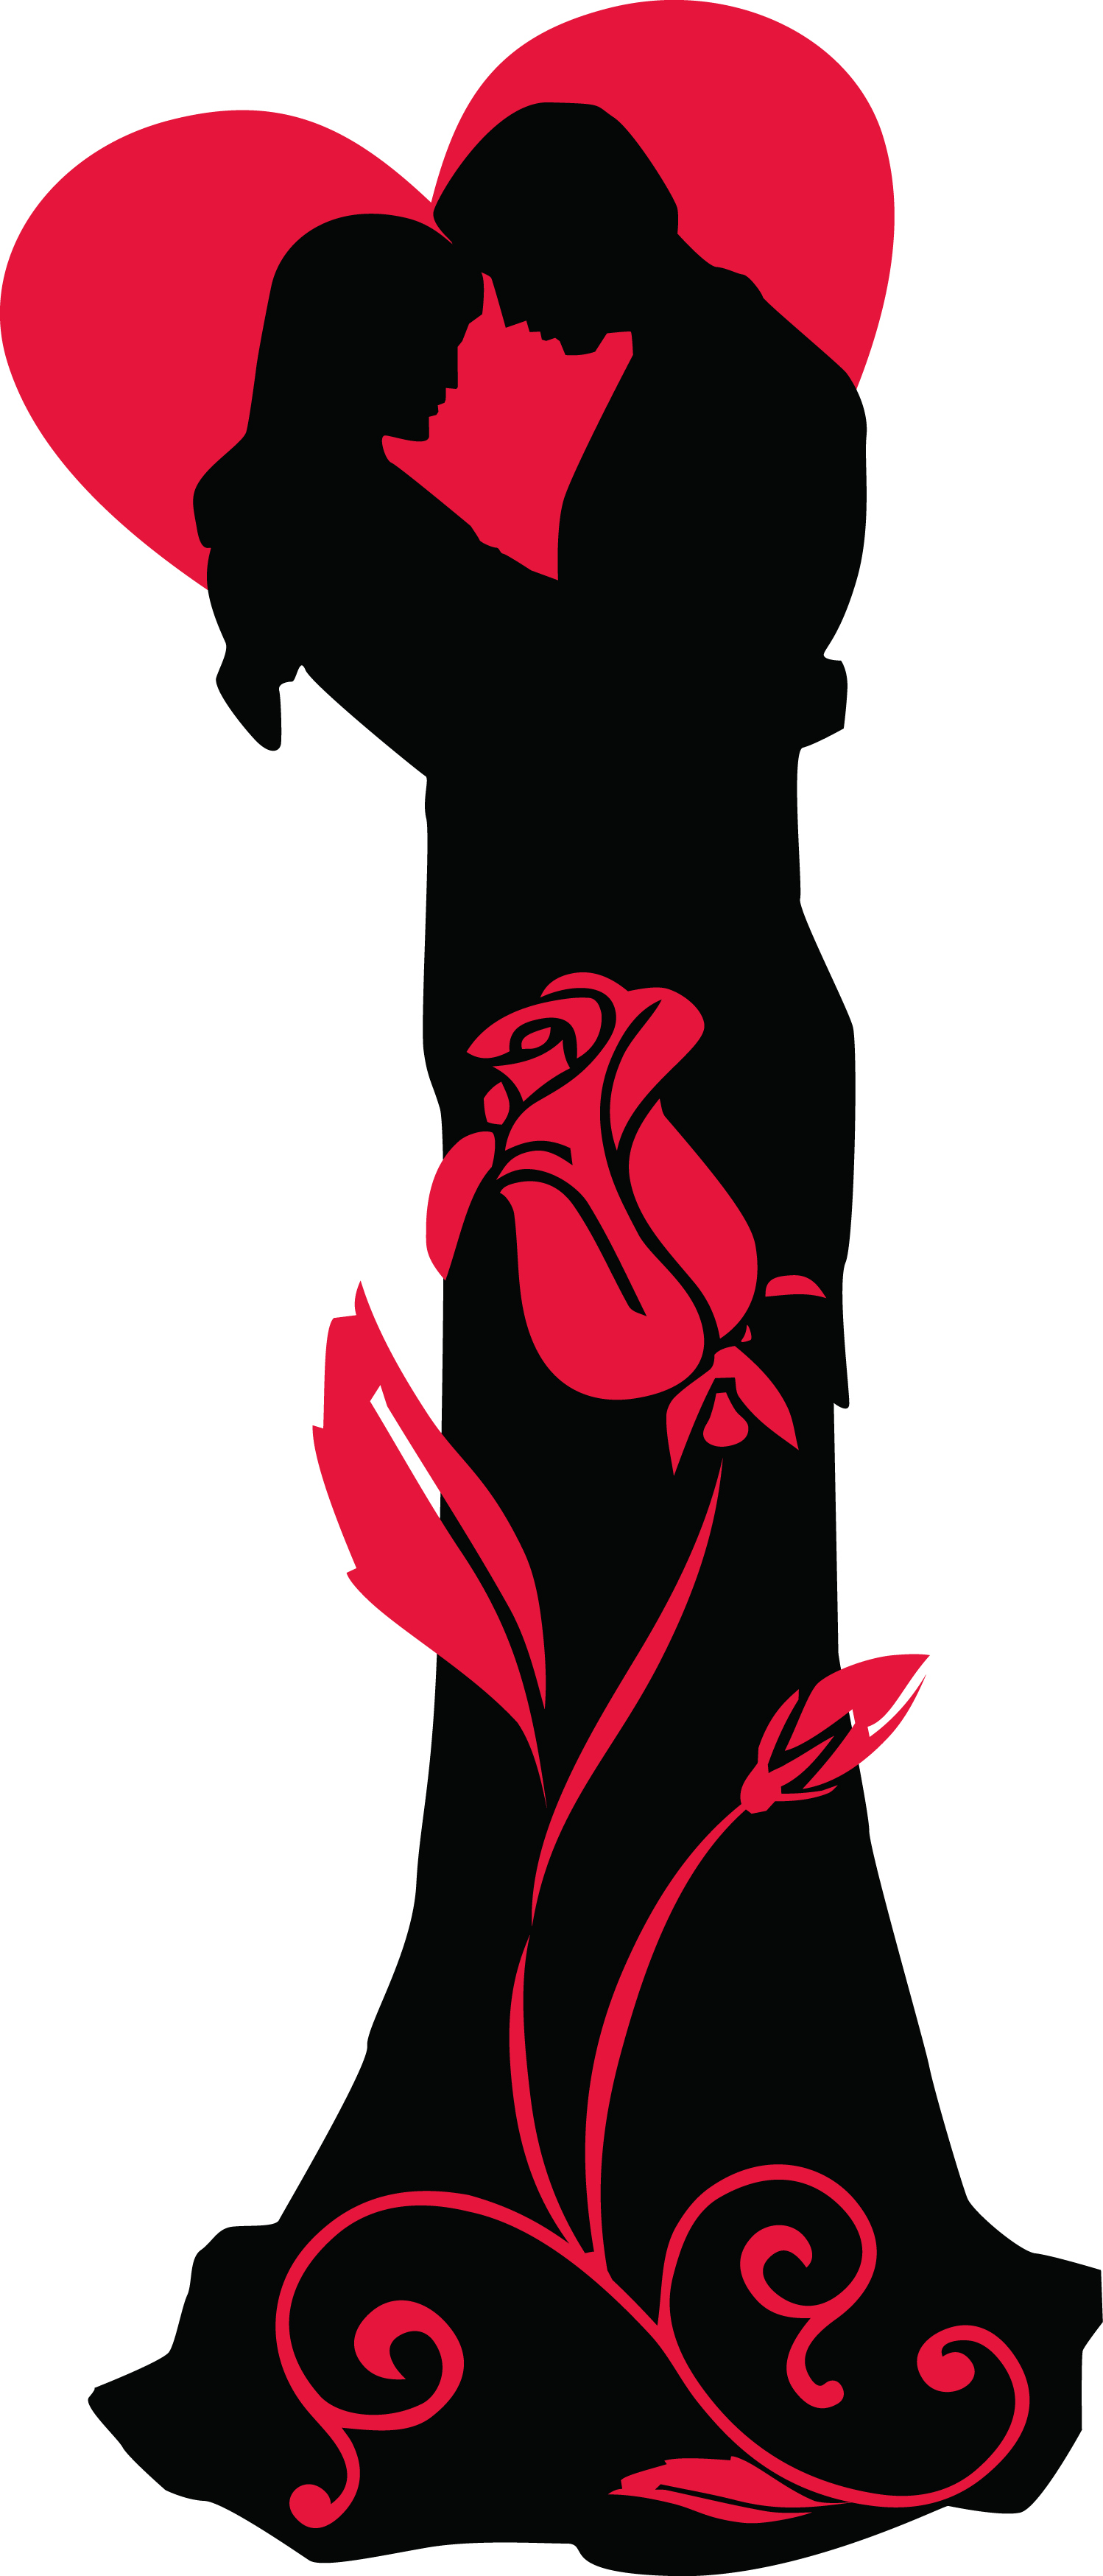 1498x3497 Transparent Loving Couple Silhouettes With Red Heart And Rose Png